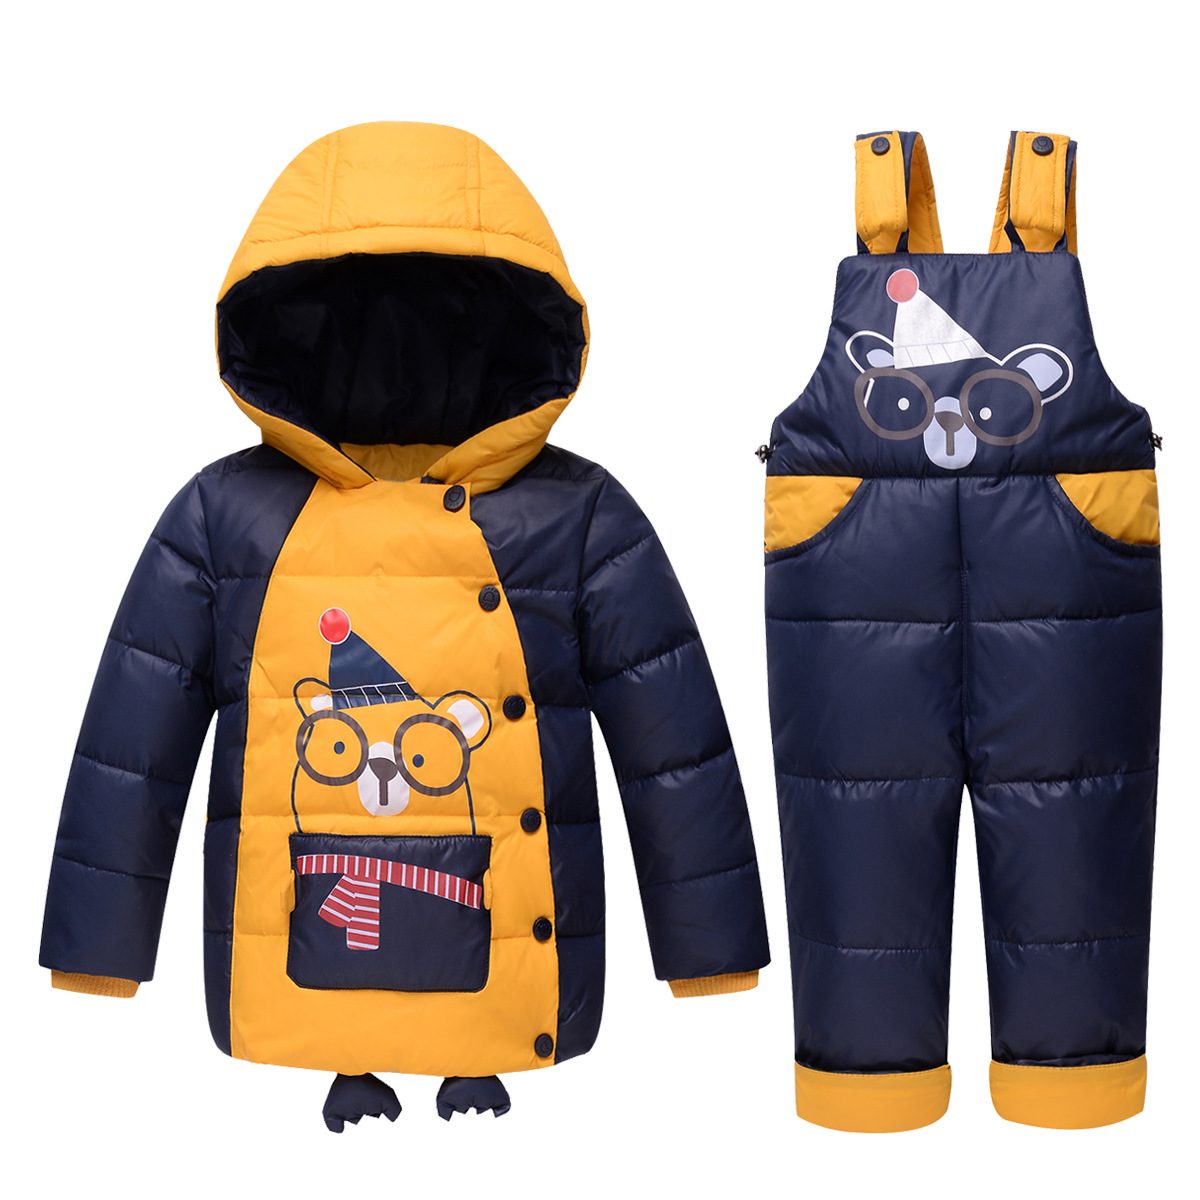 1-3Y Children Clothing Sets Baby Boys Girls Winter hooded Duck Down Jacket + Trousers Waterproof Snowsuit Warm Kids Clothes Set 2015 new autumn winter warm boys girls suit children s sets baby boys hooded clothing set girl kids sets sweatshirts and pant